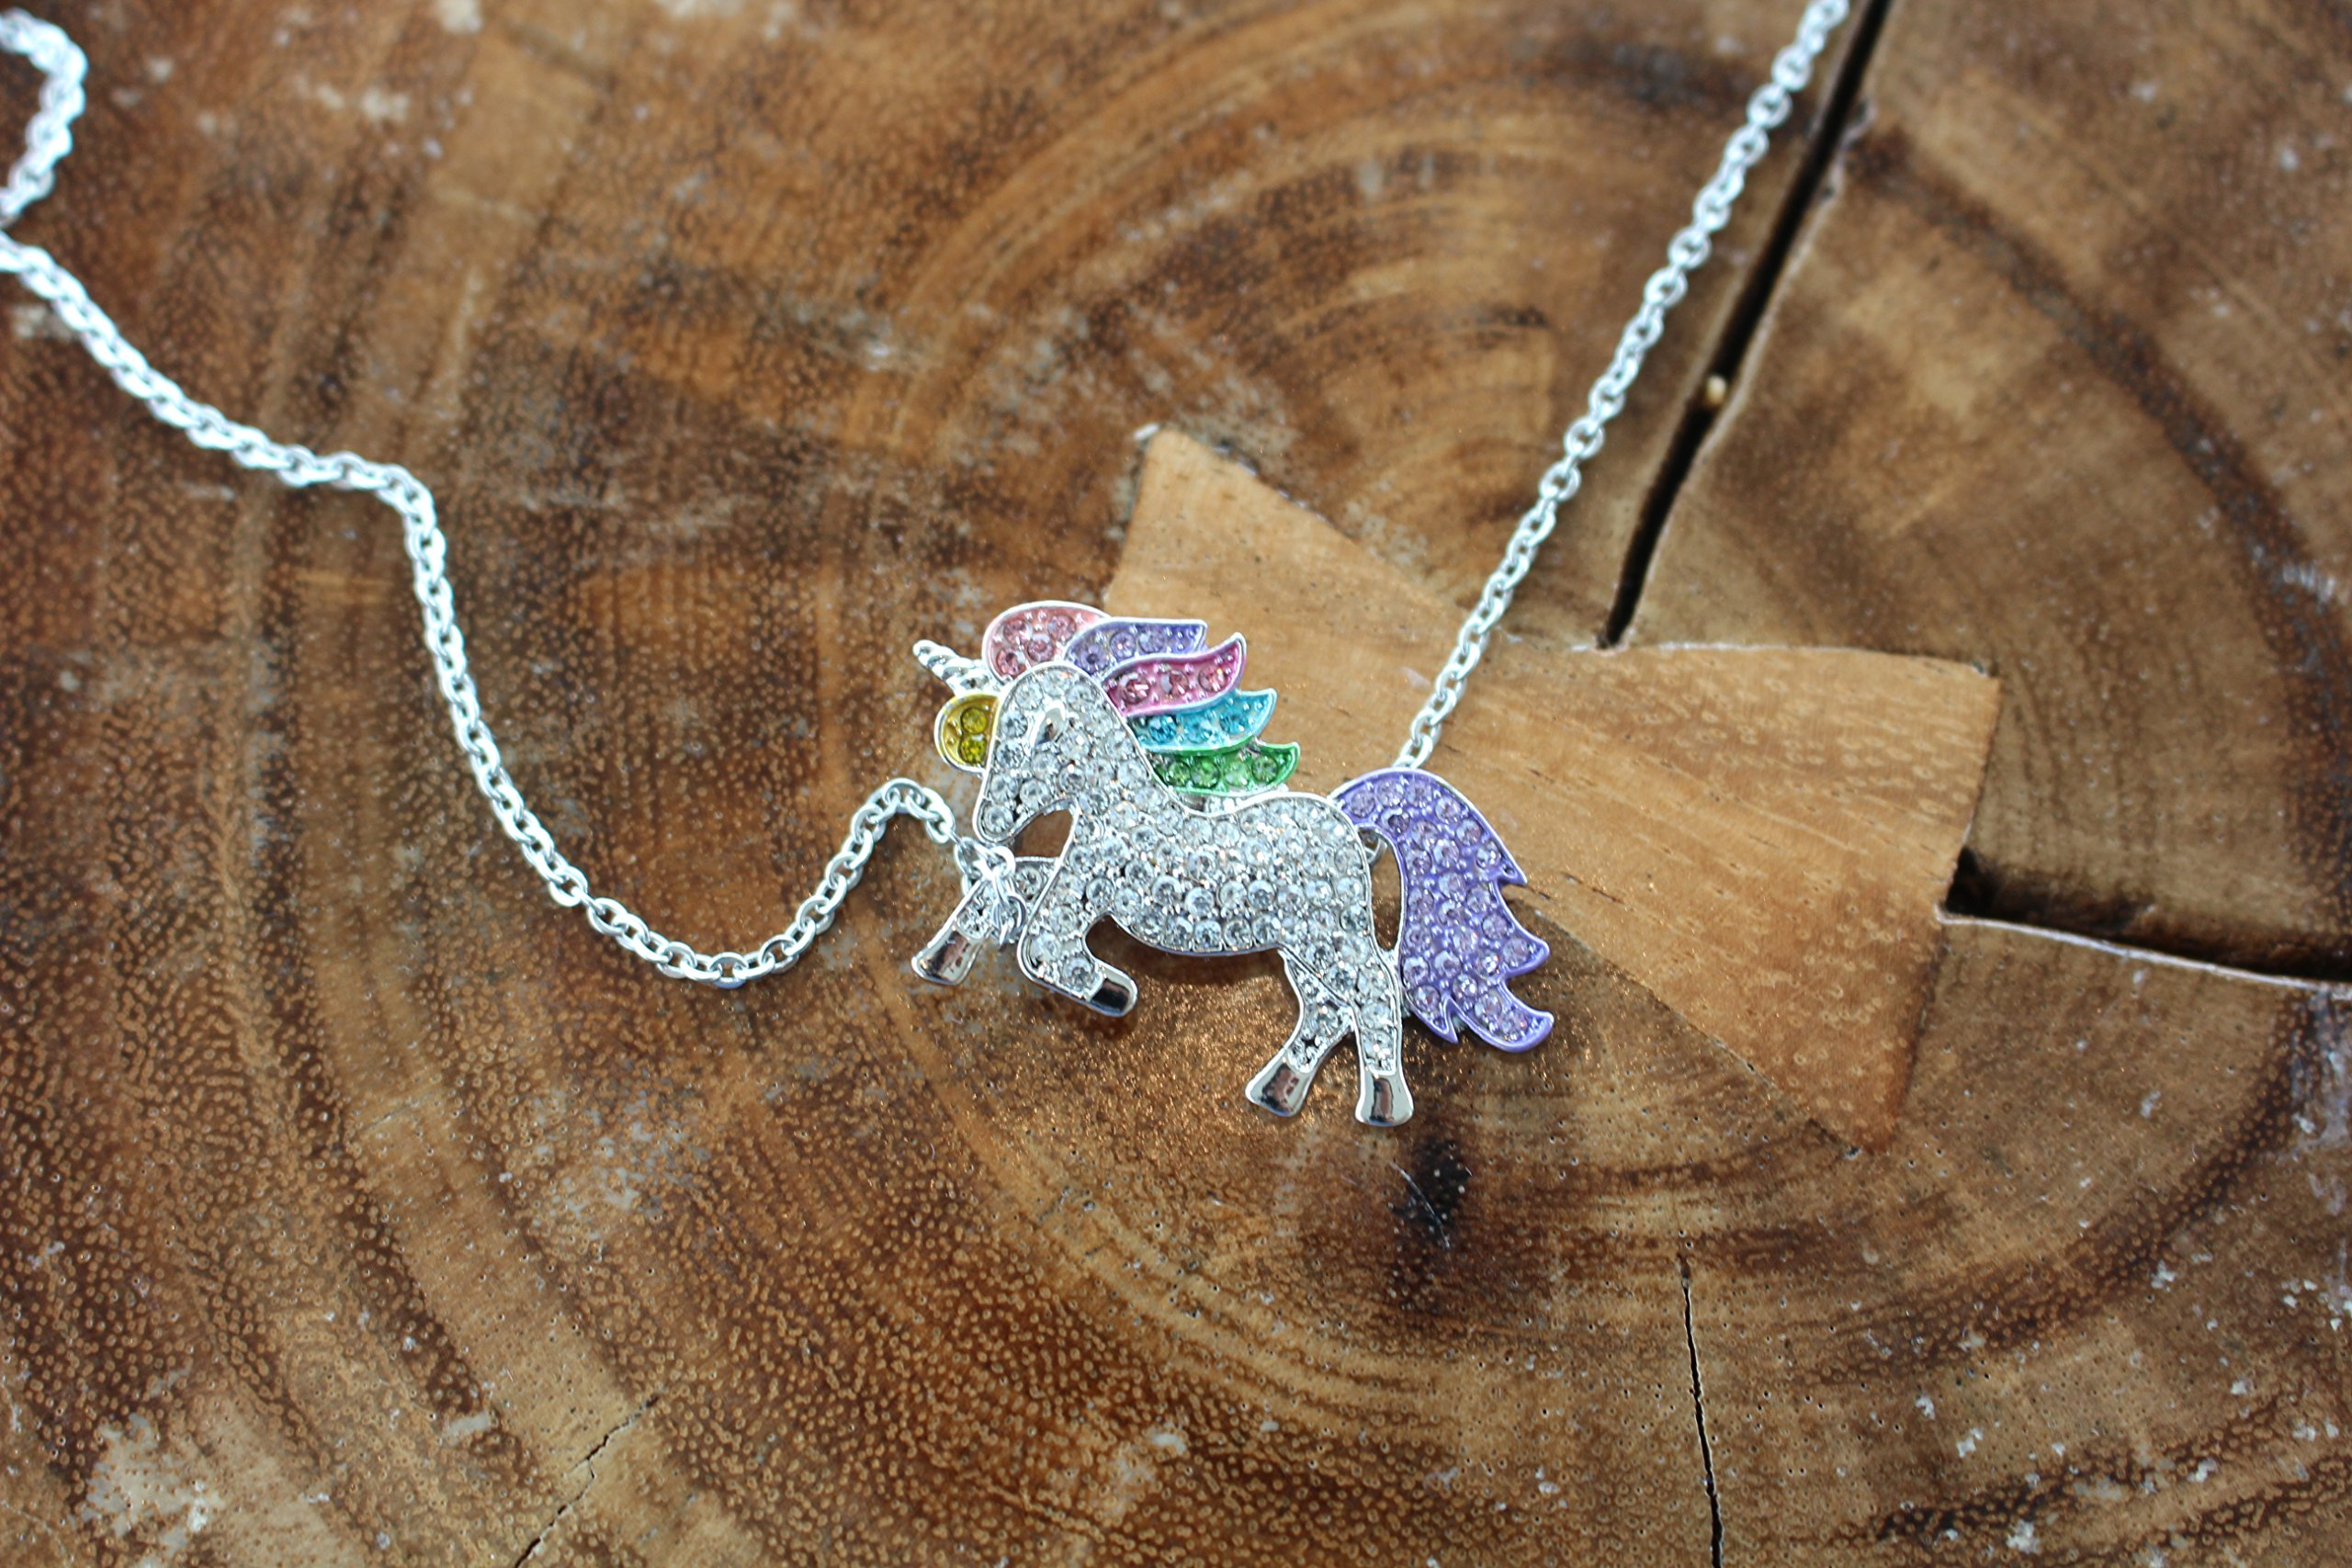 Persona Model Agency Unicorn Necklace - Rainbow Unicorn Necklace - Sterling Silver with Swarovski Elements